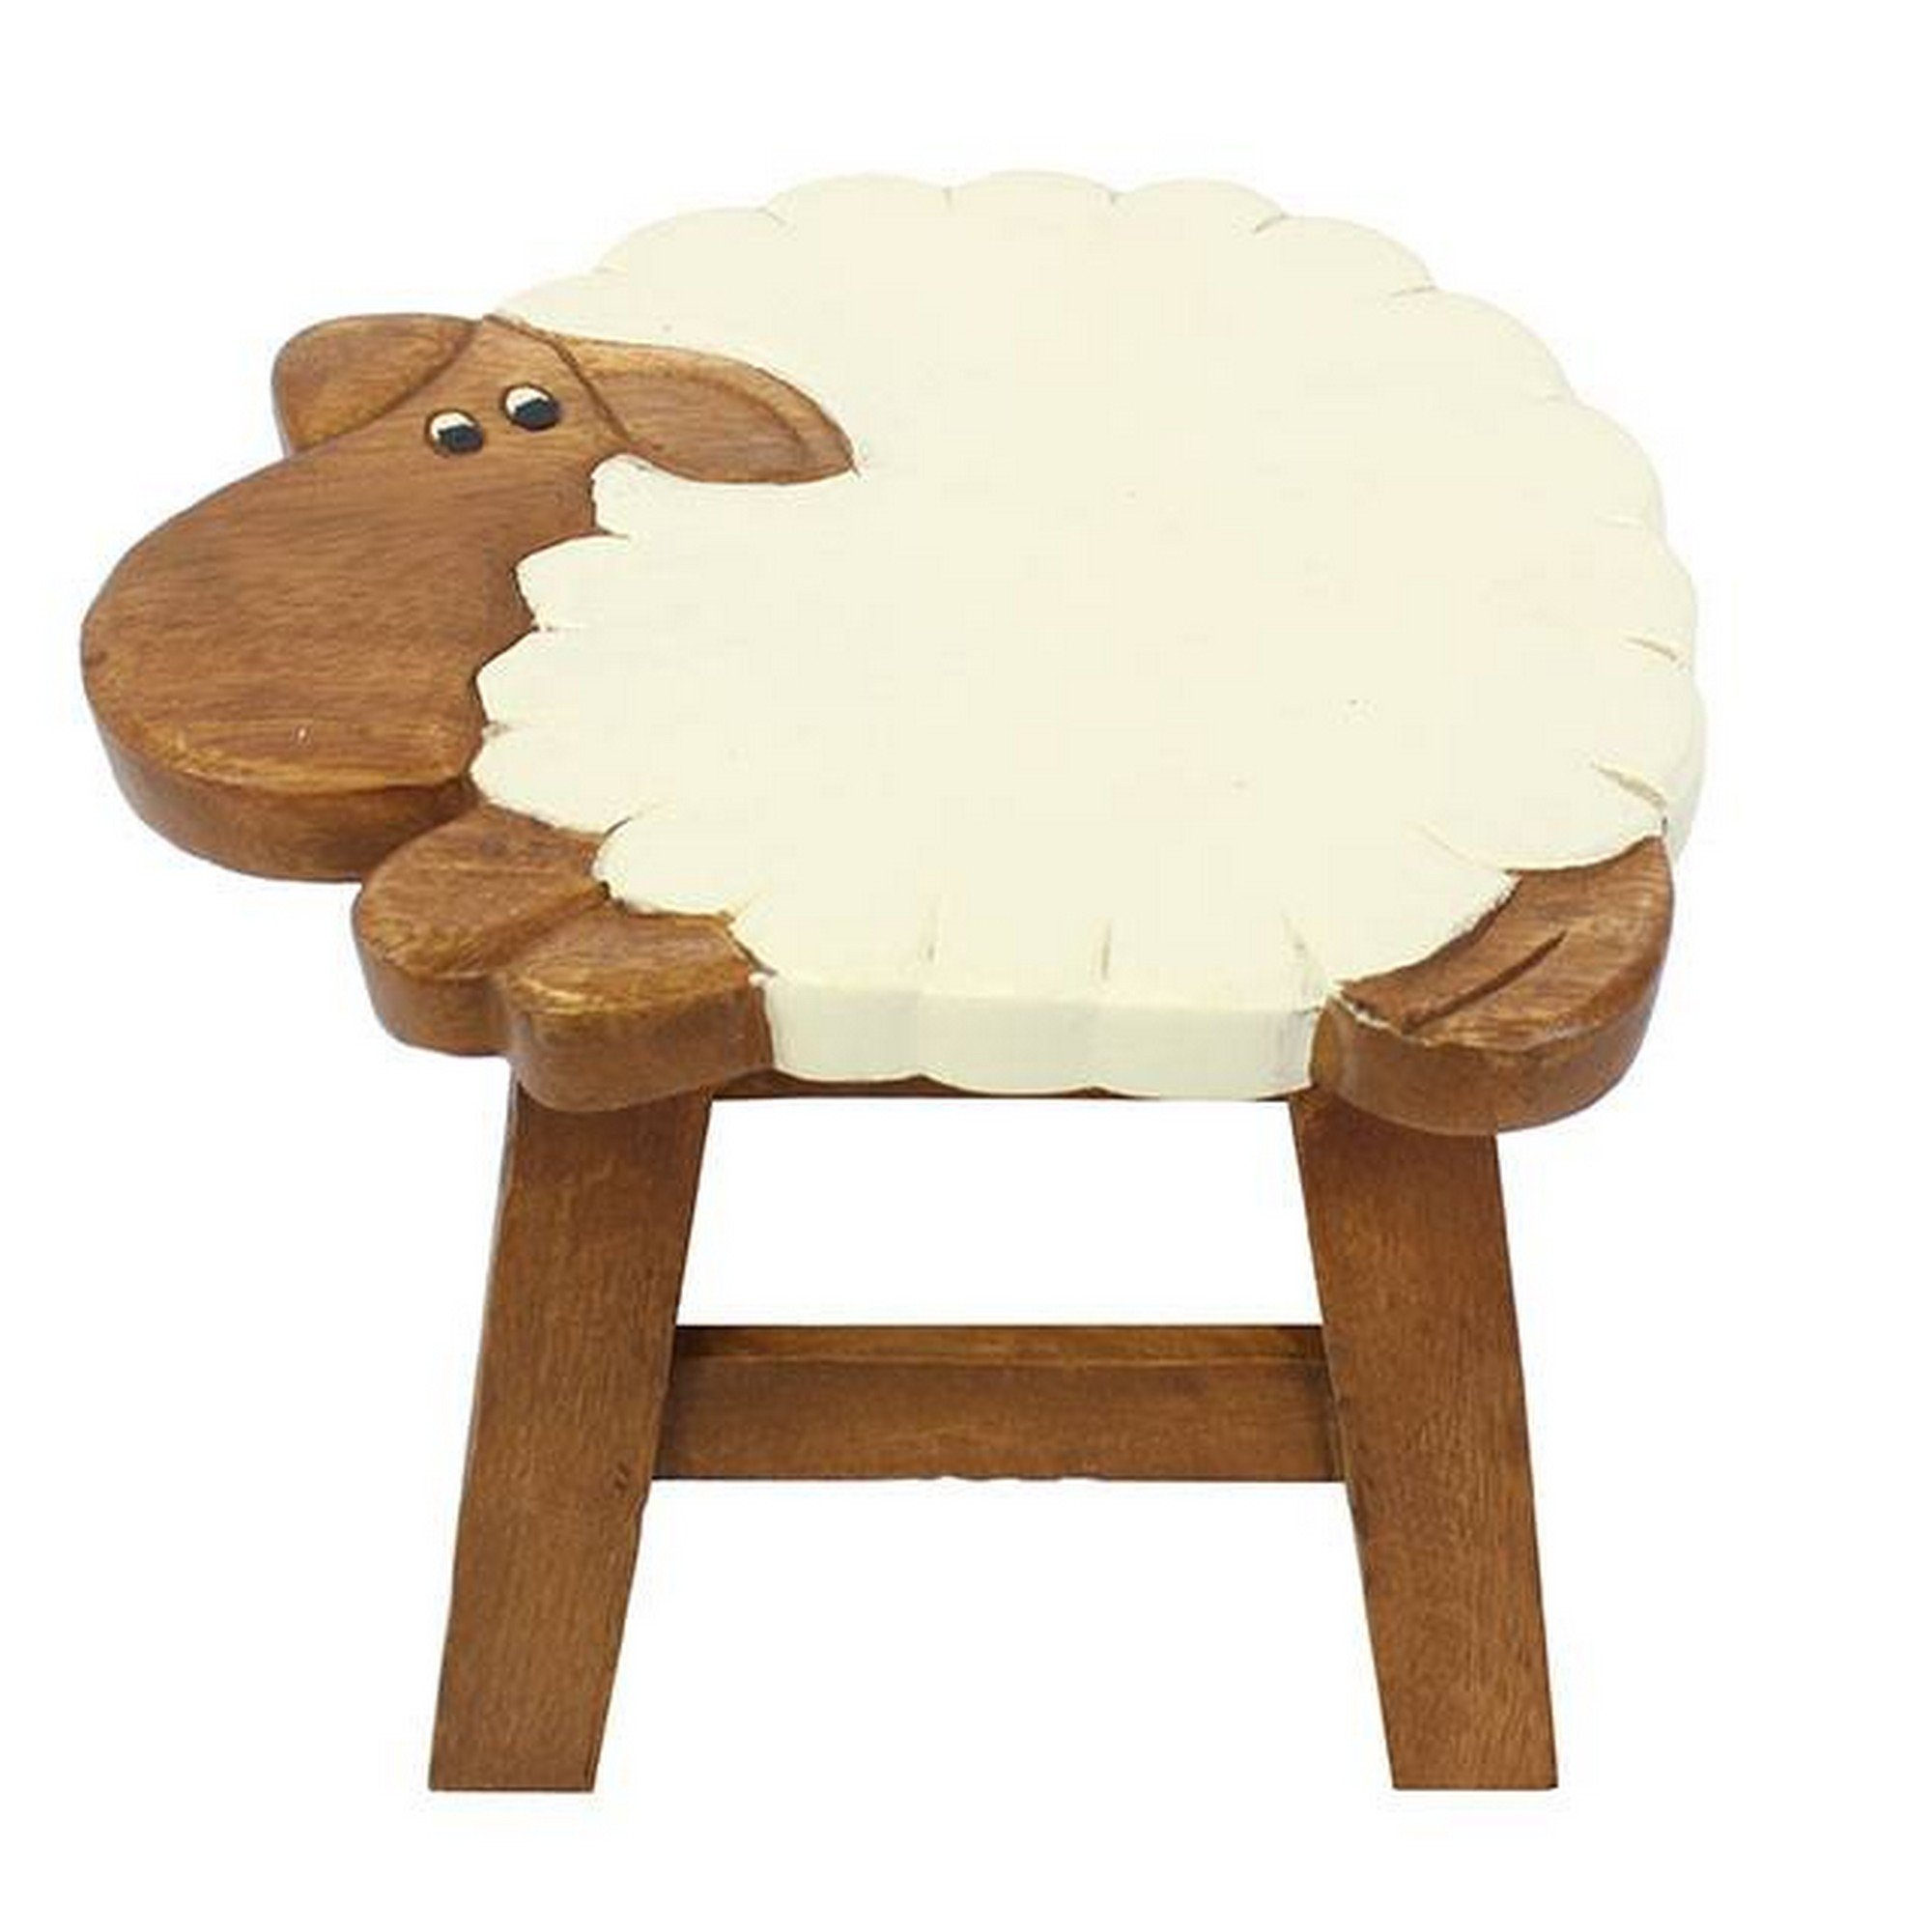 Ethically Sourced Children's Wooden Stool Sheep Design by Jones Home and Gift